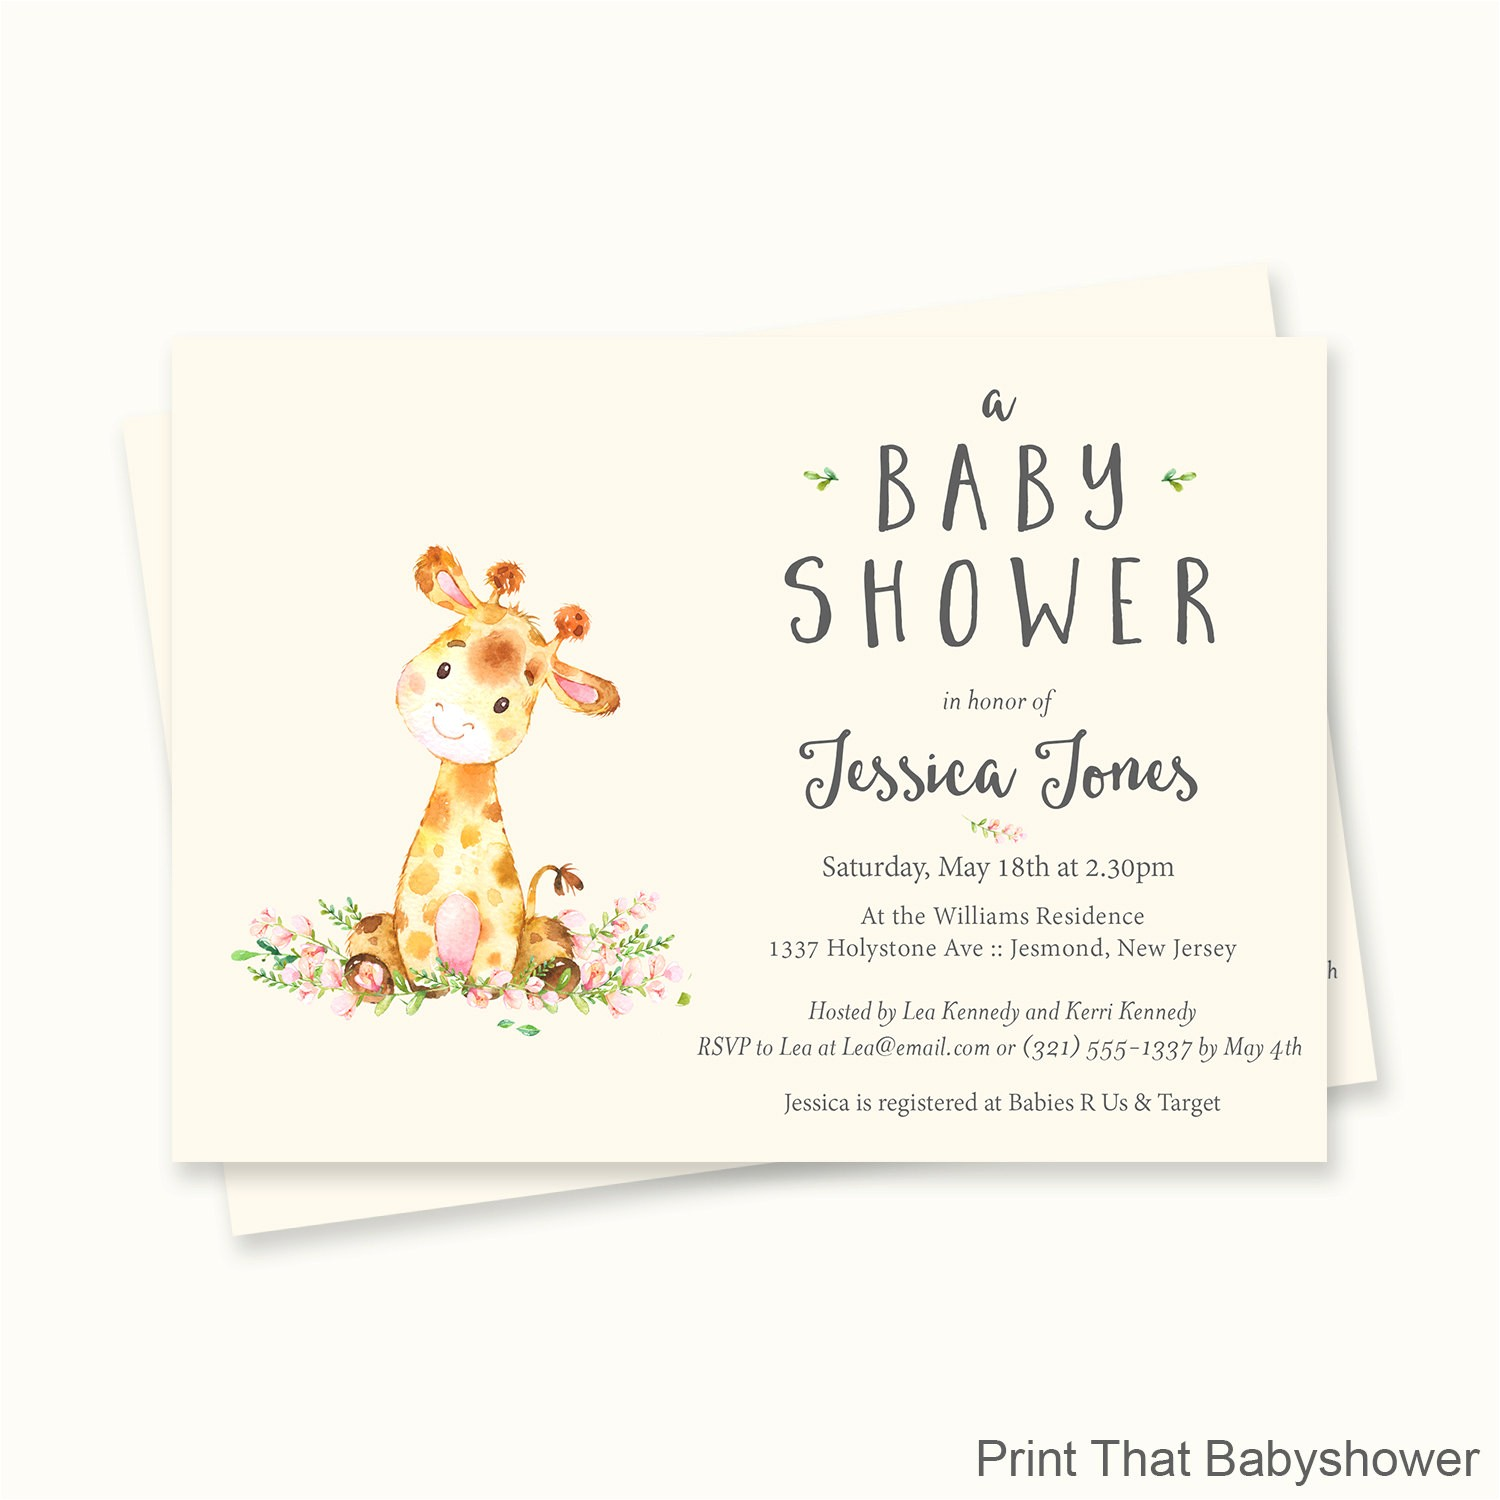 Baby Shower Invitations with Giraffes Giraffe Baby Shower Invitations Giraffe Baby Shower